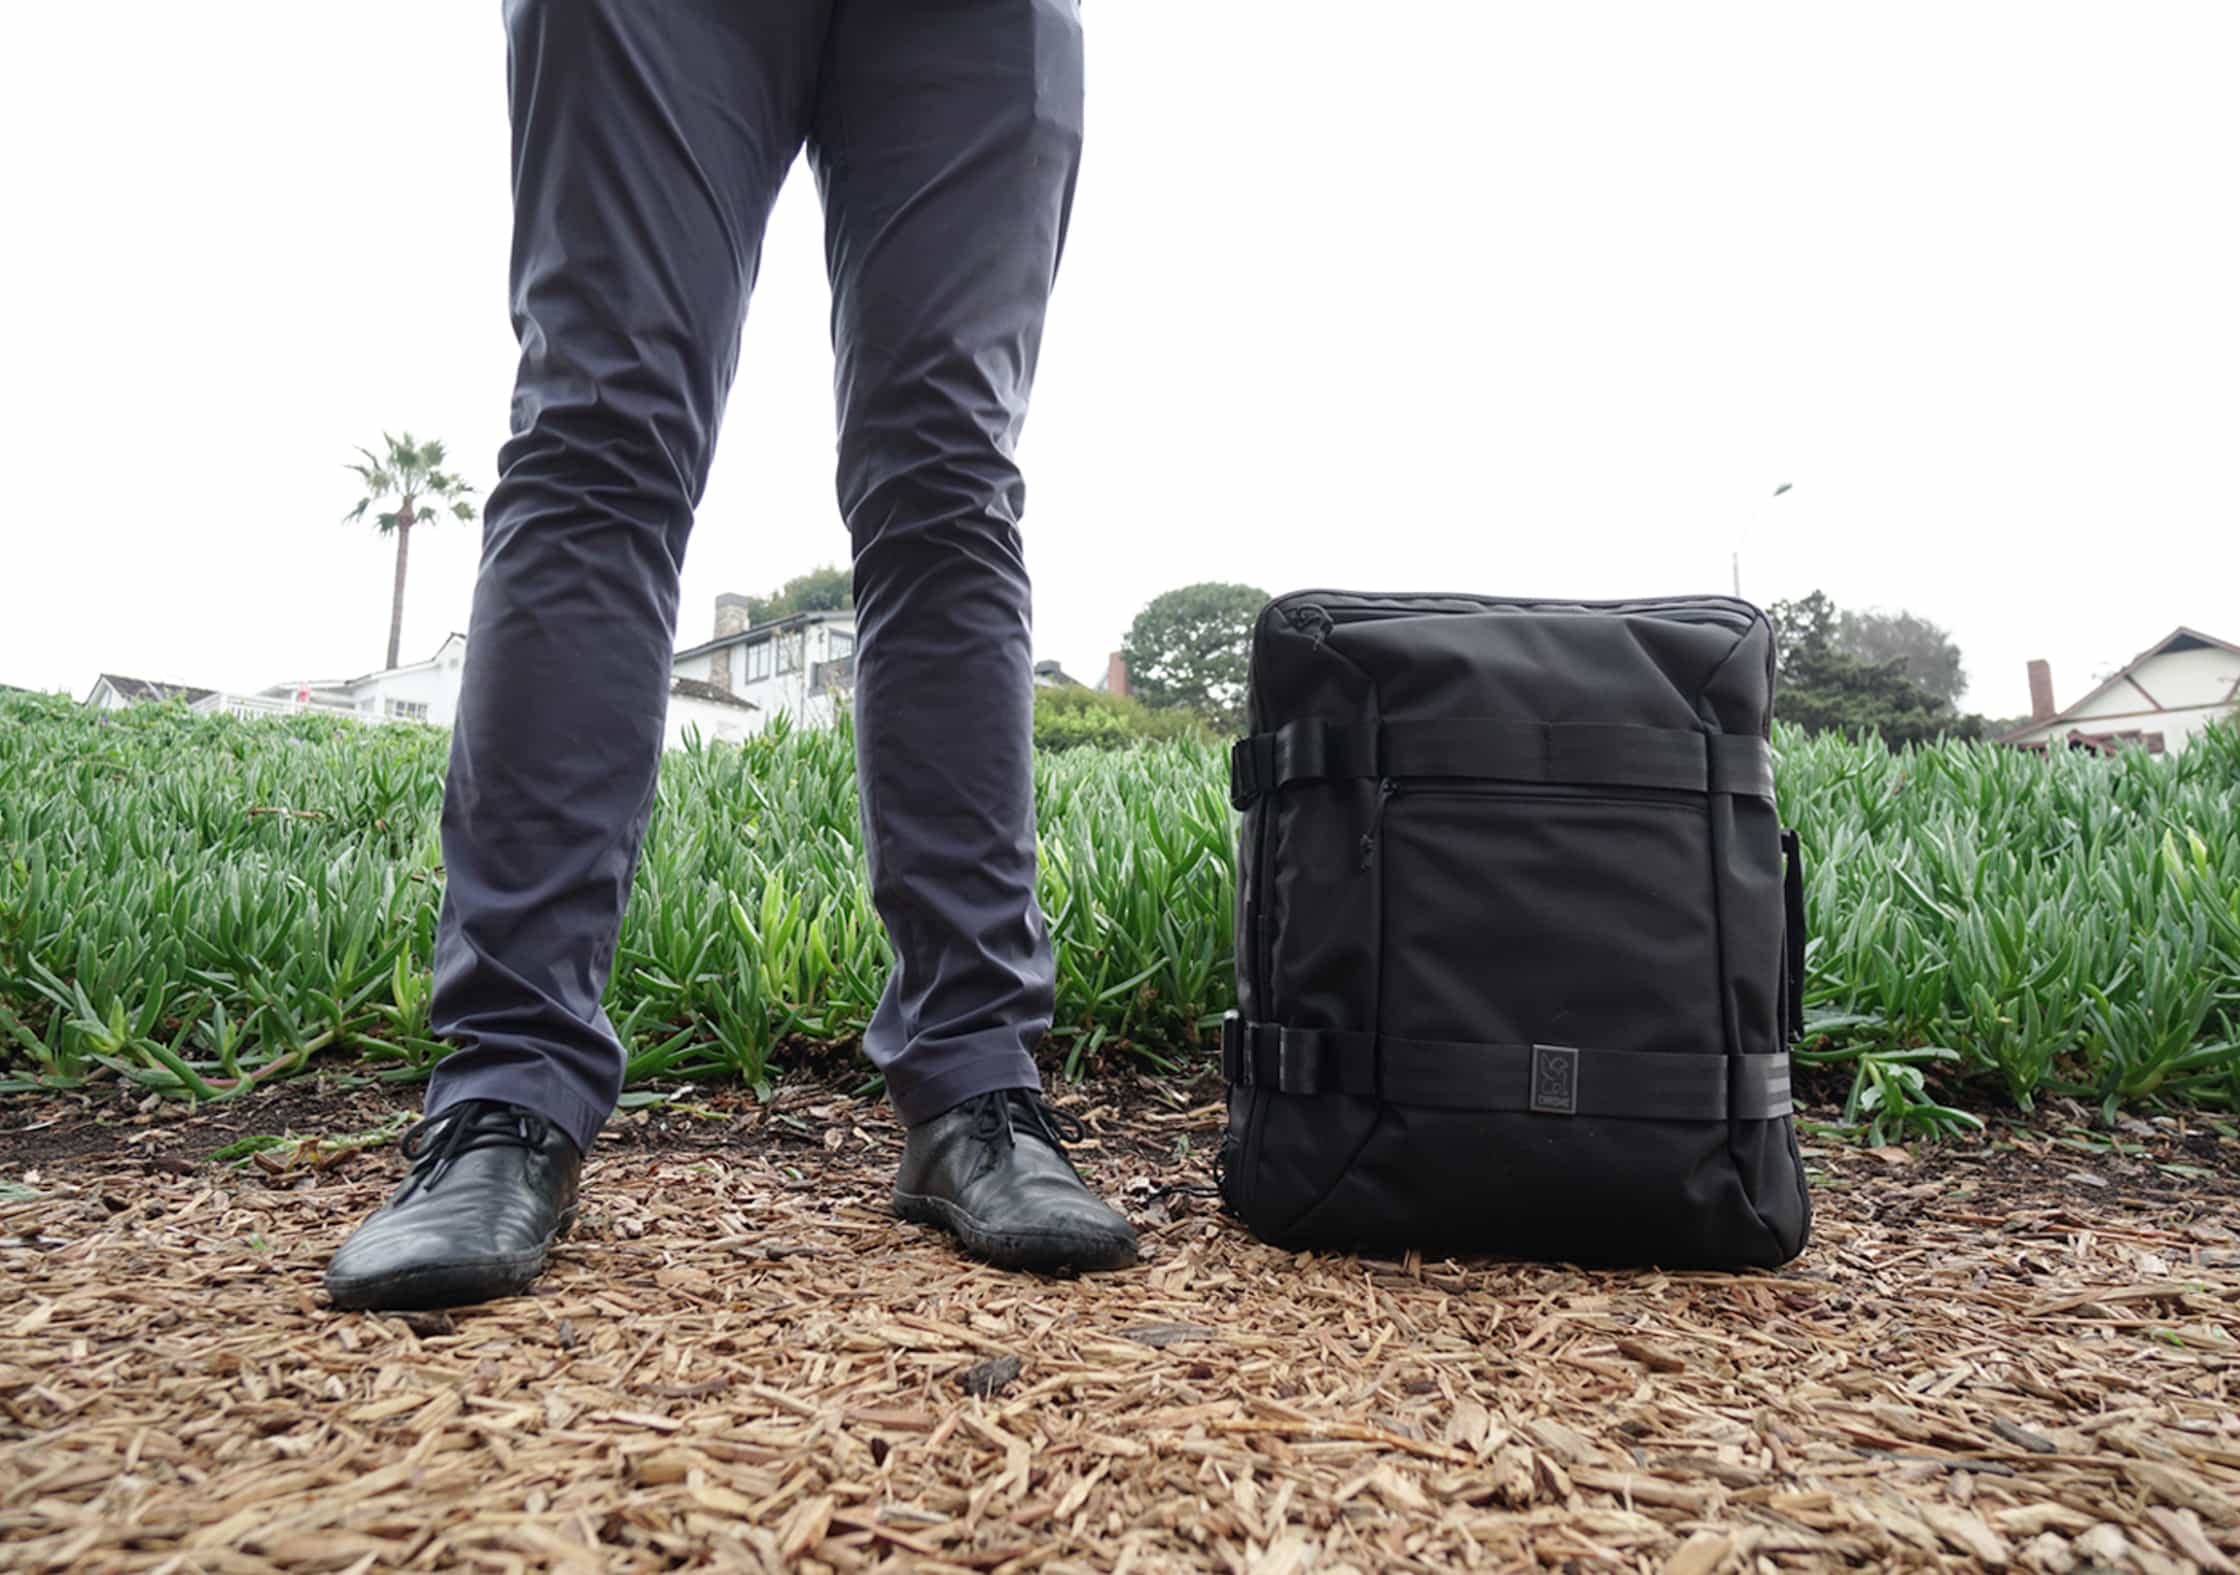 Chrome Macheto Travel Backpack Usage